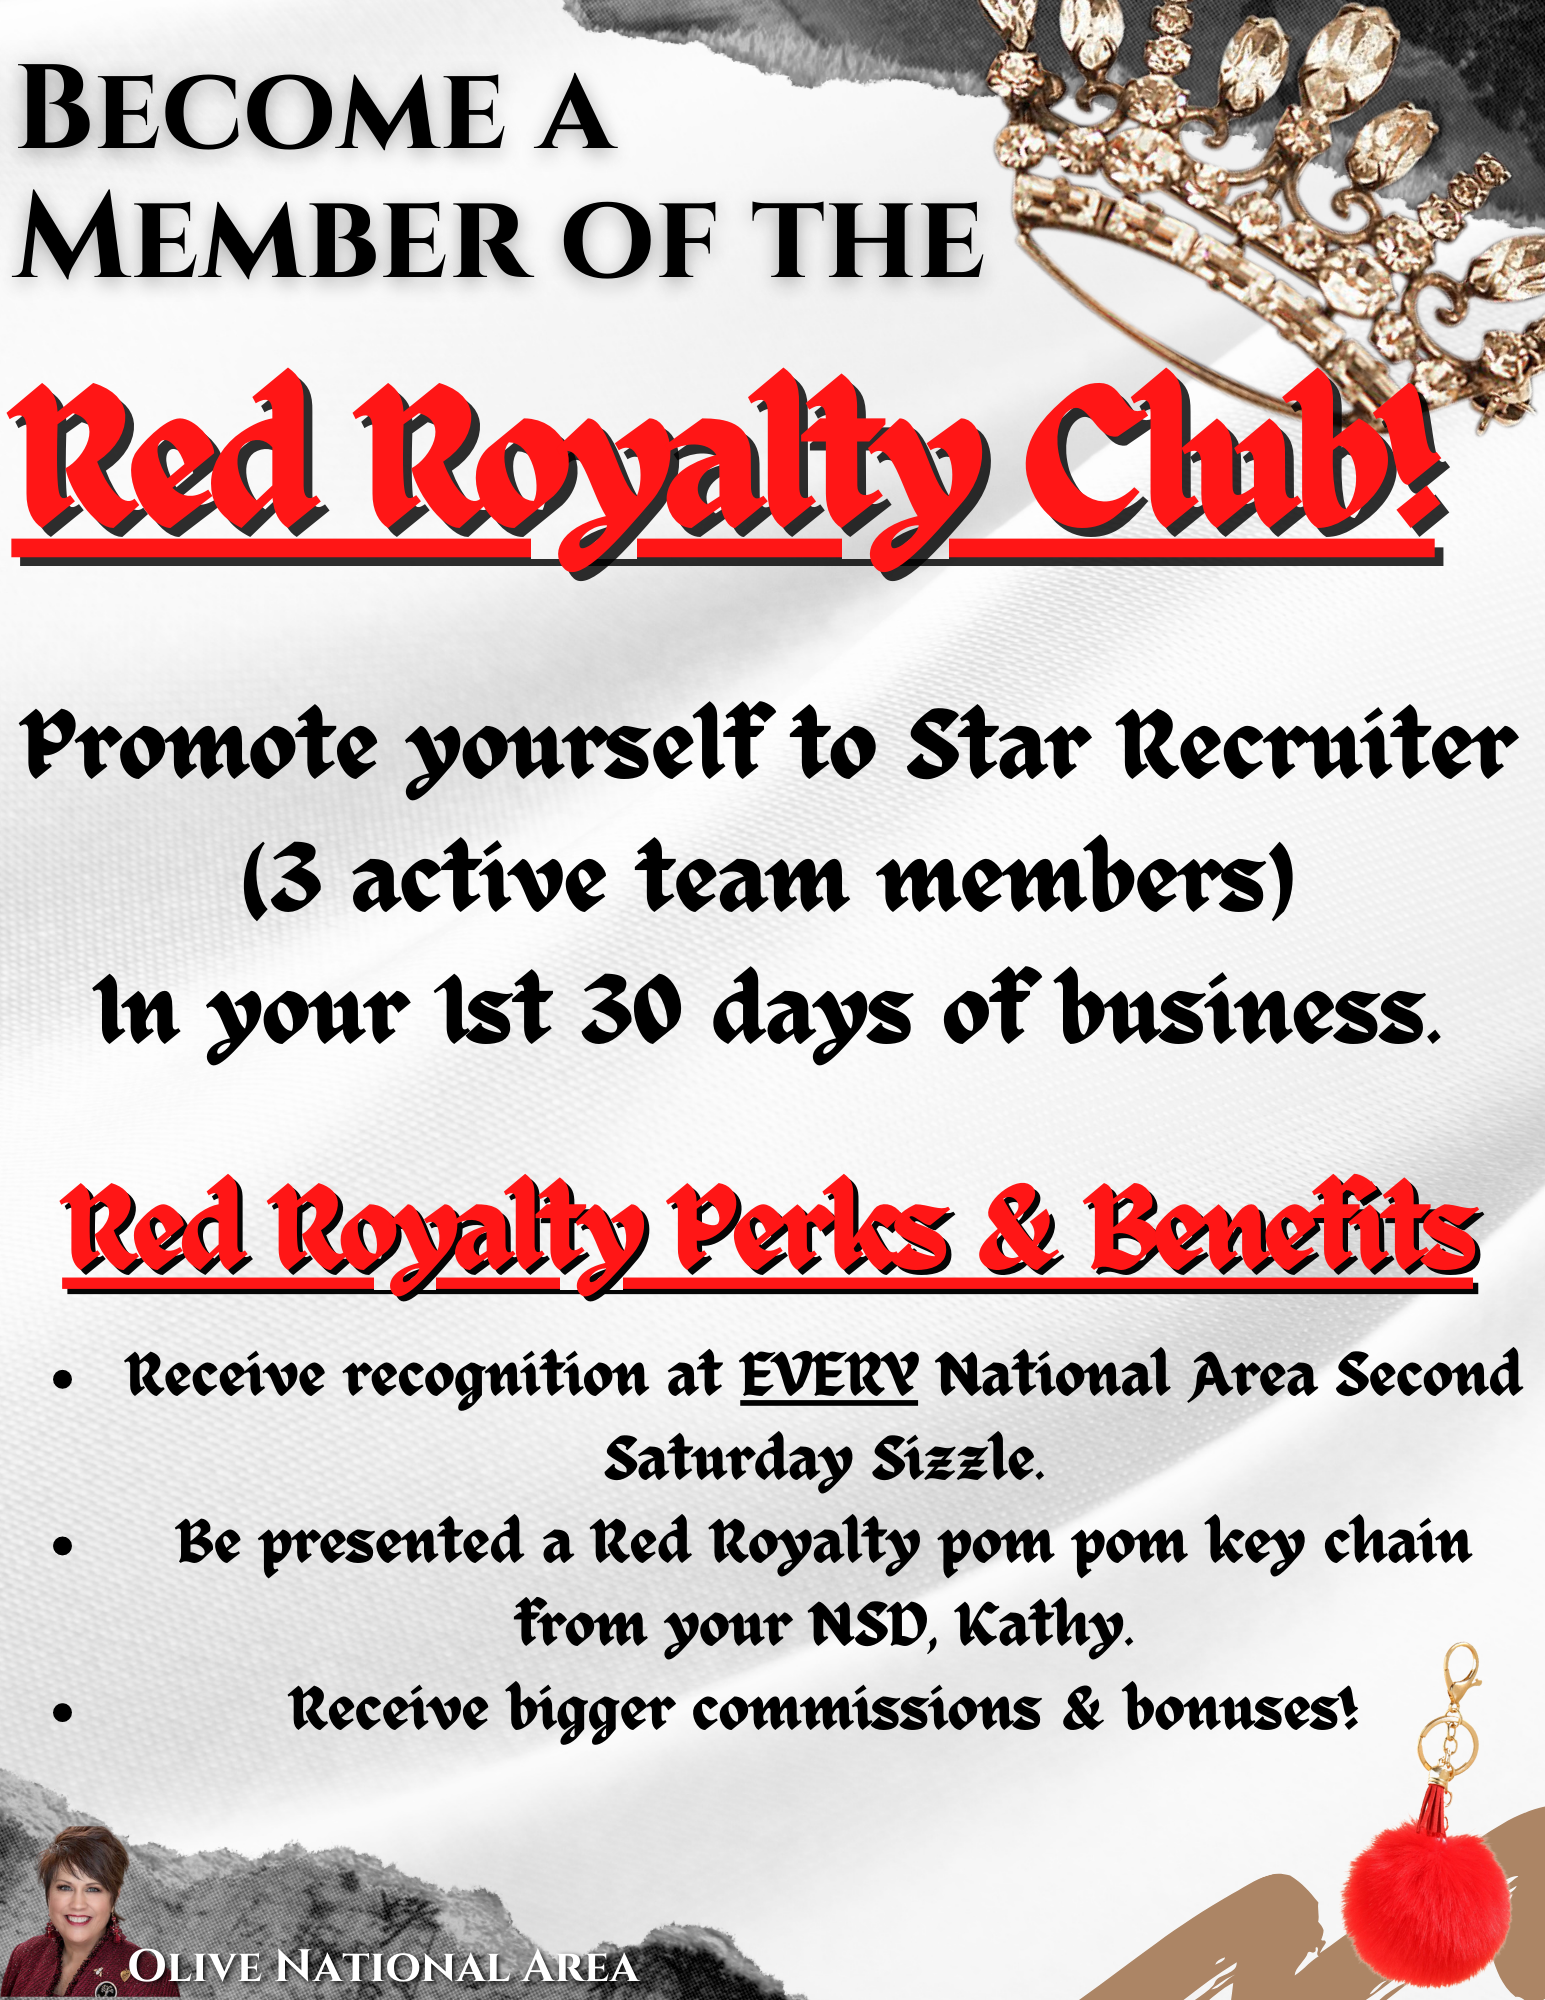 red Royalty Club updated